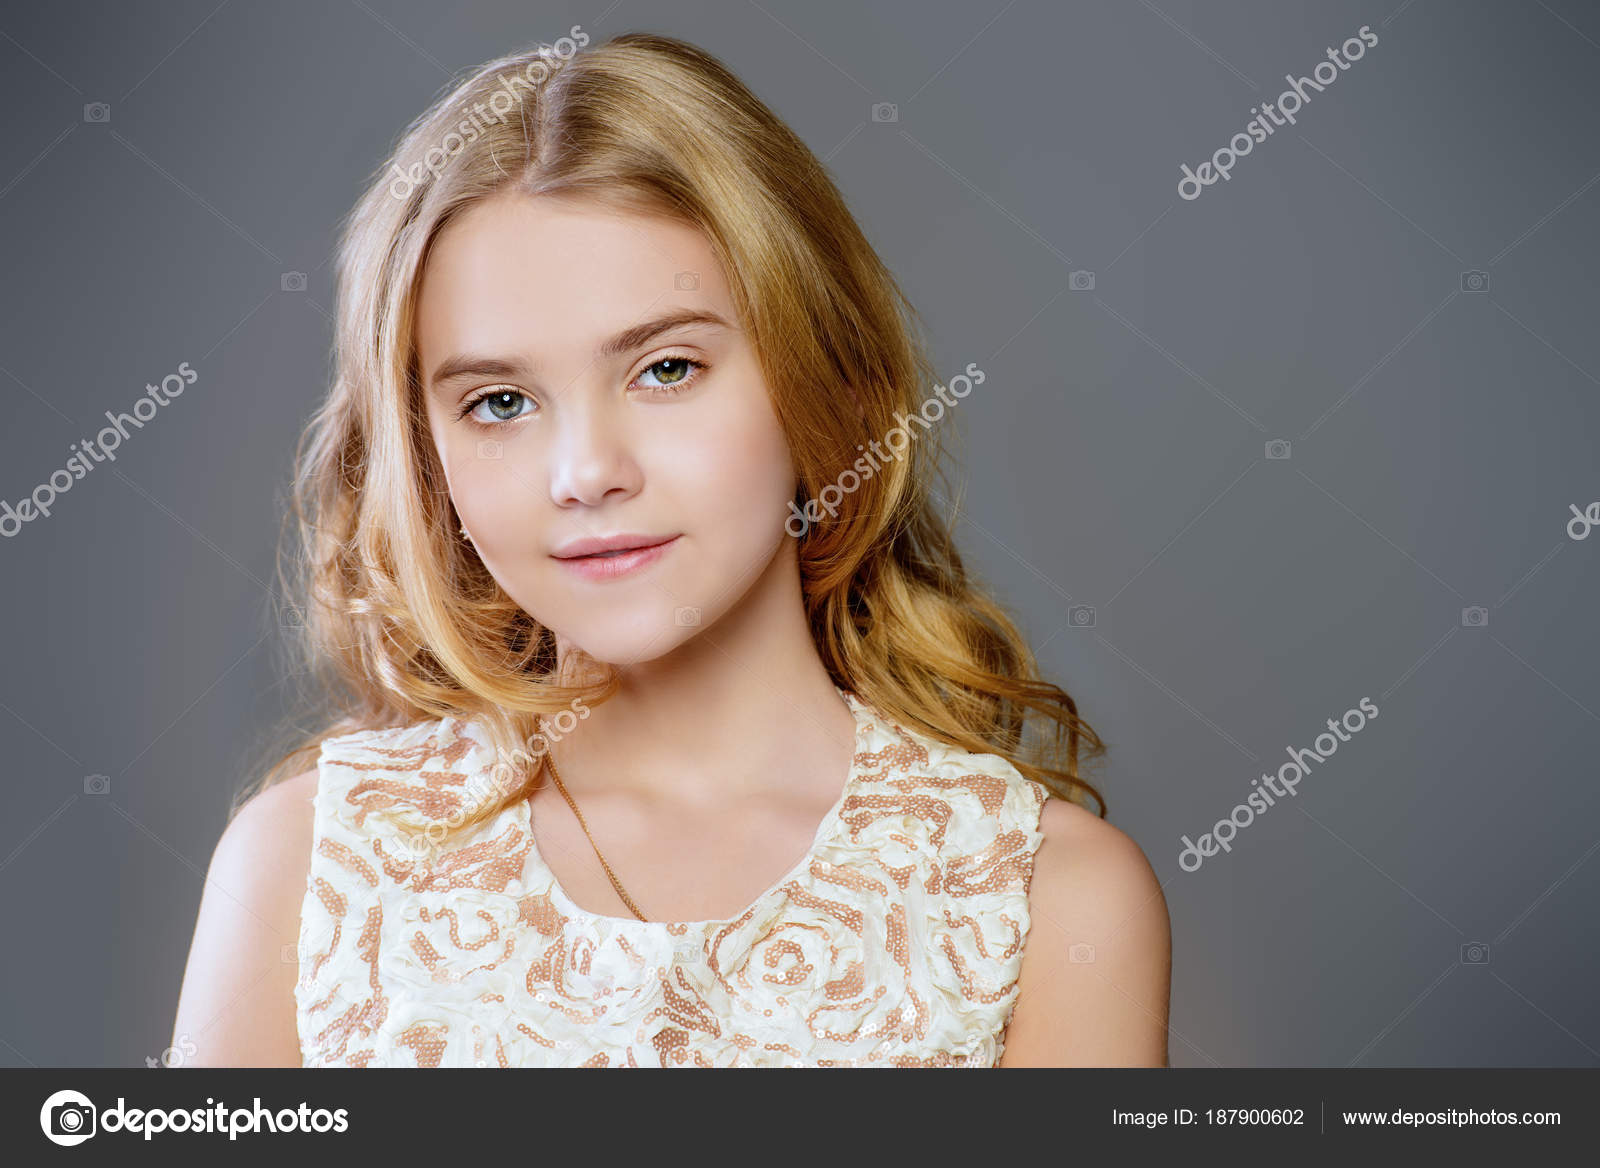 Nine Year Old Girl Stock Photo C Prometeus 187900602